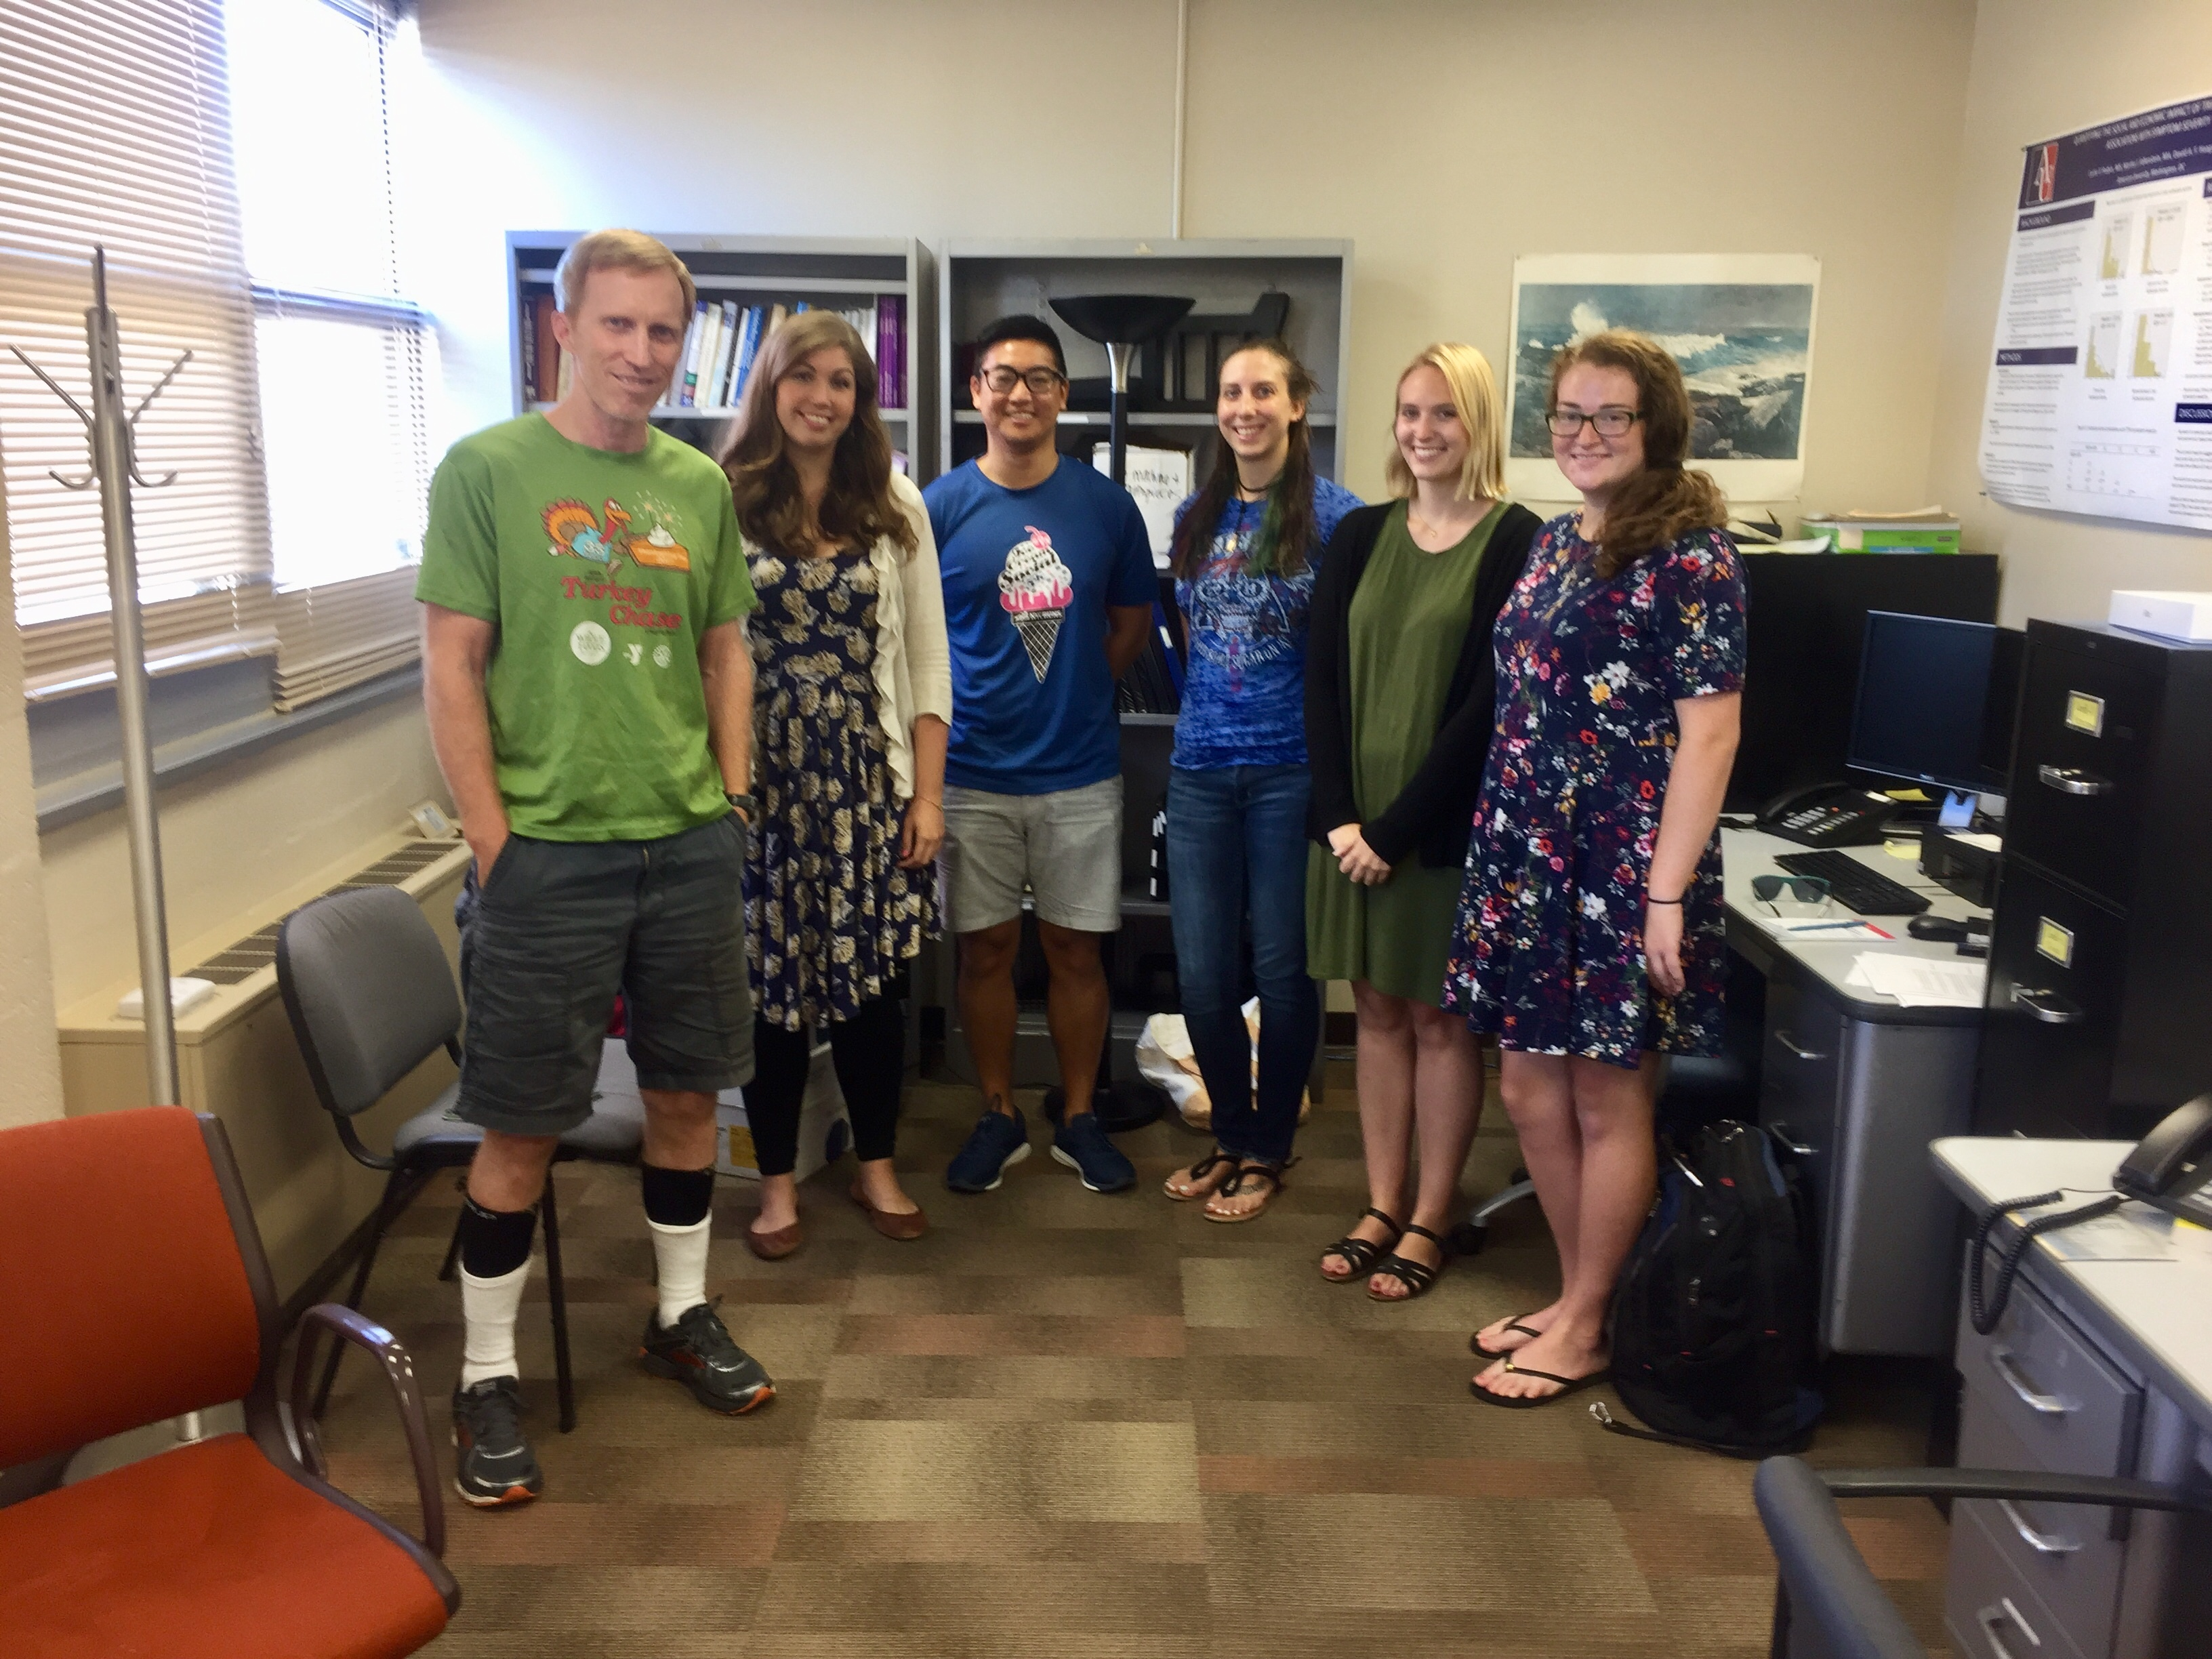 Dr. Haaga's lab - Fall 2018